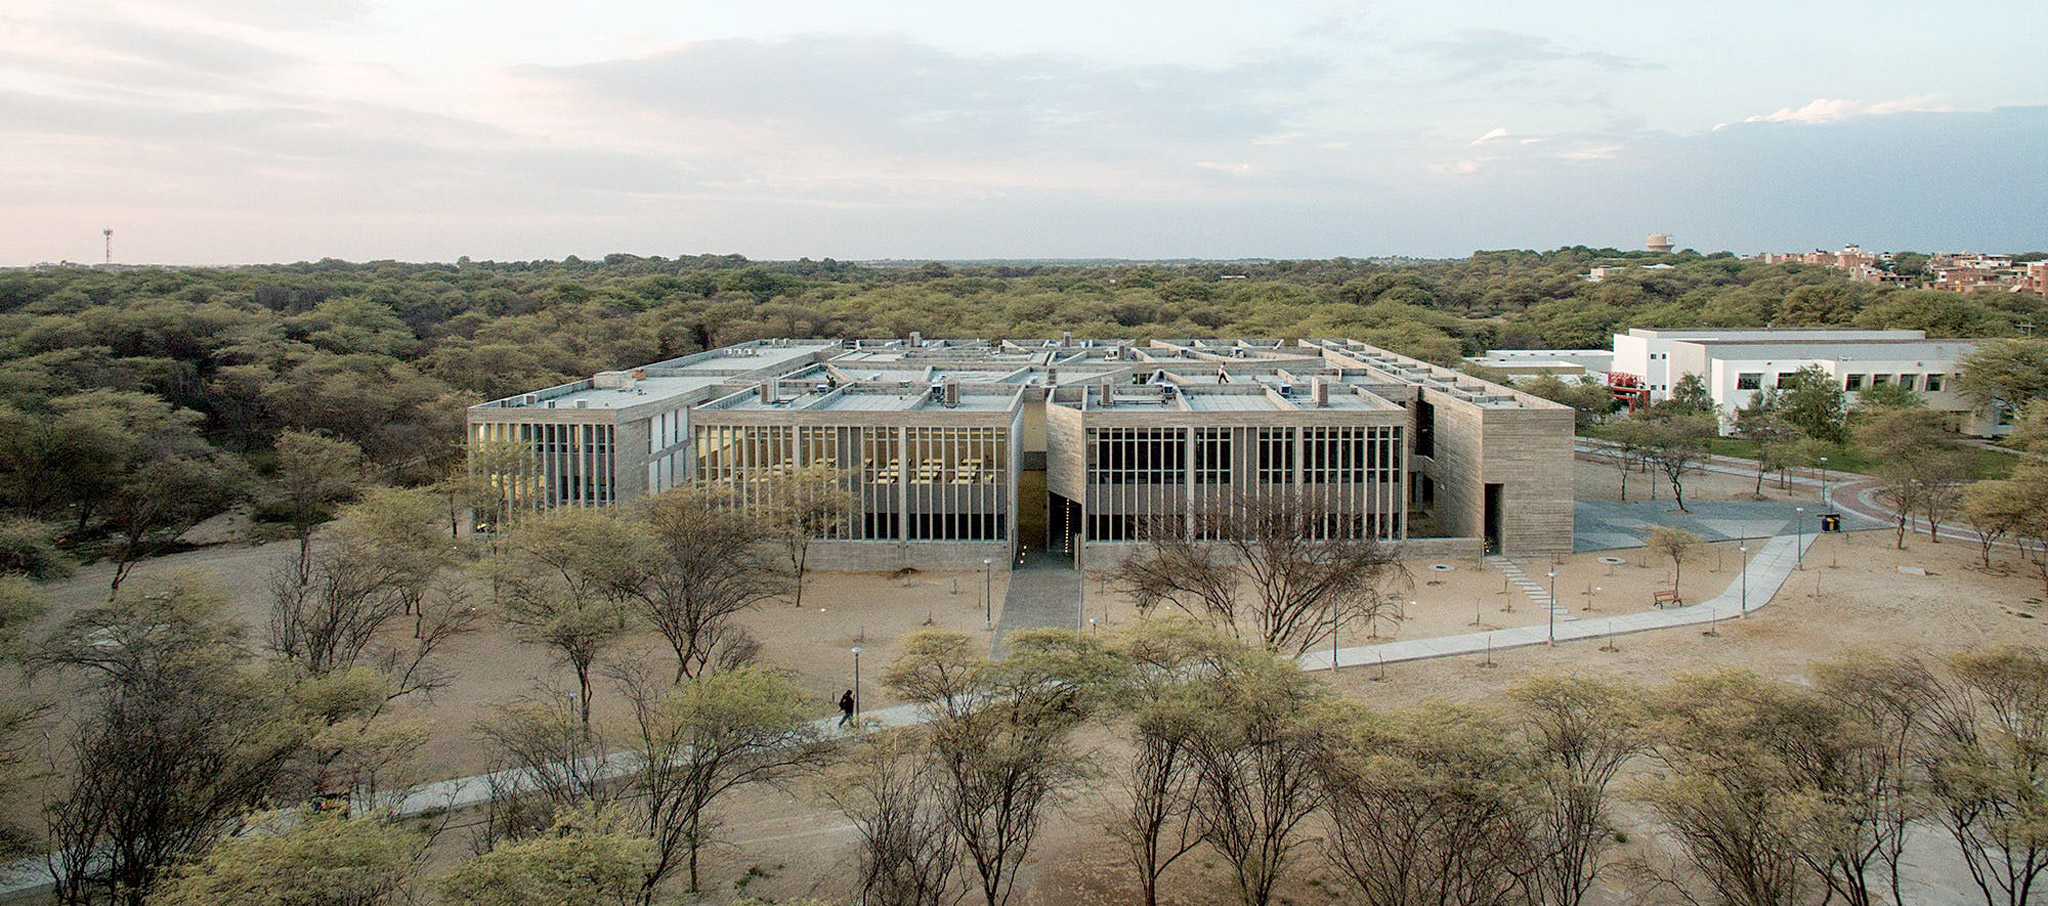 'Edificio E' education building for the University of Piura Photograph by Barclay & Crousse. Cristobal Palma